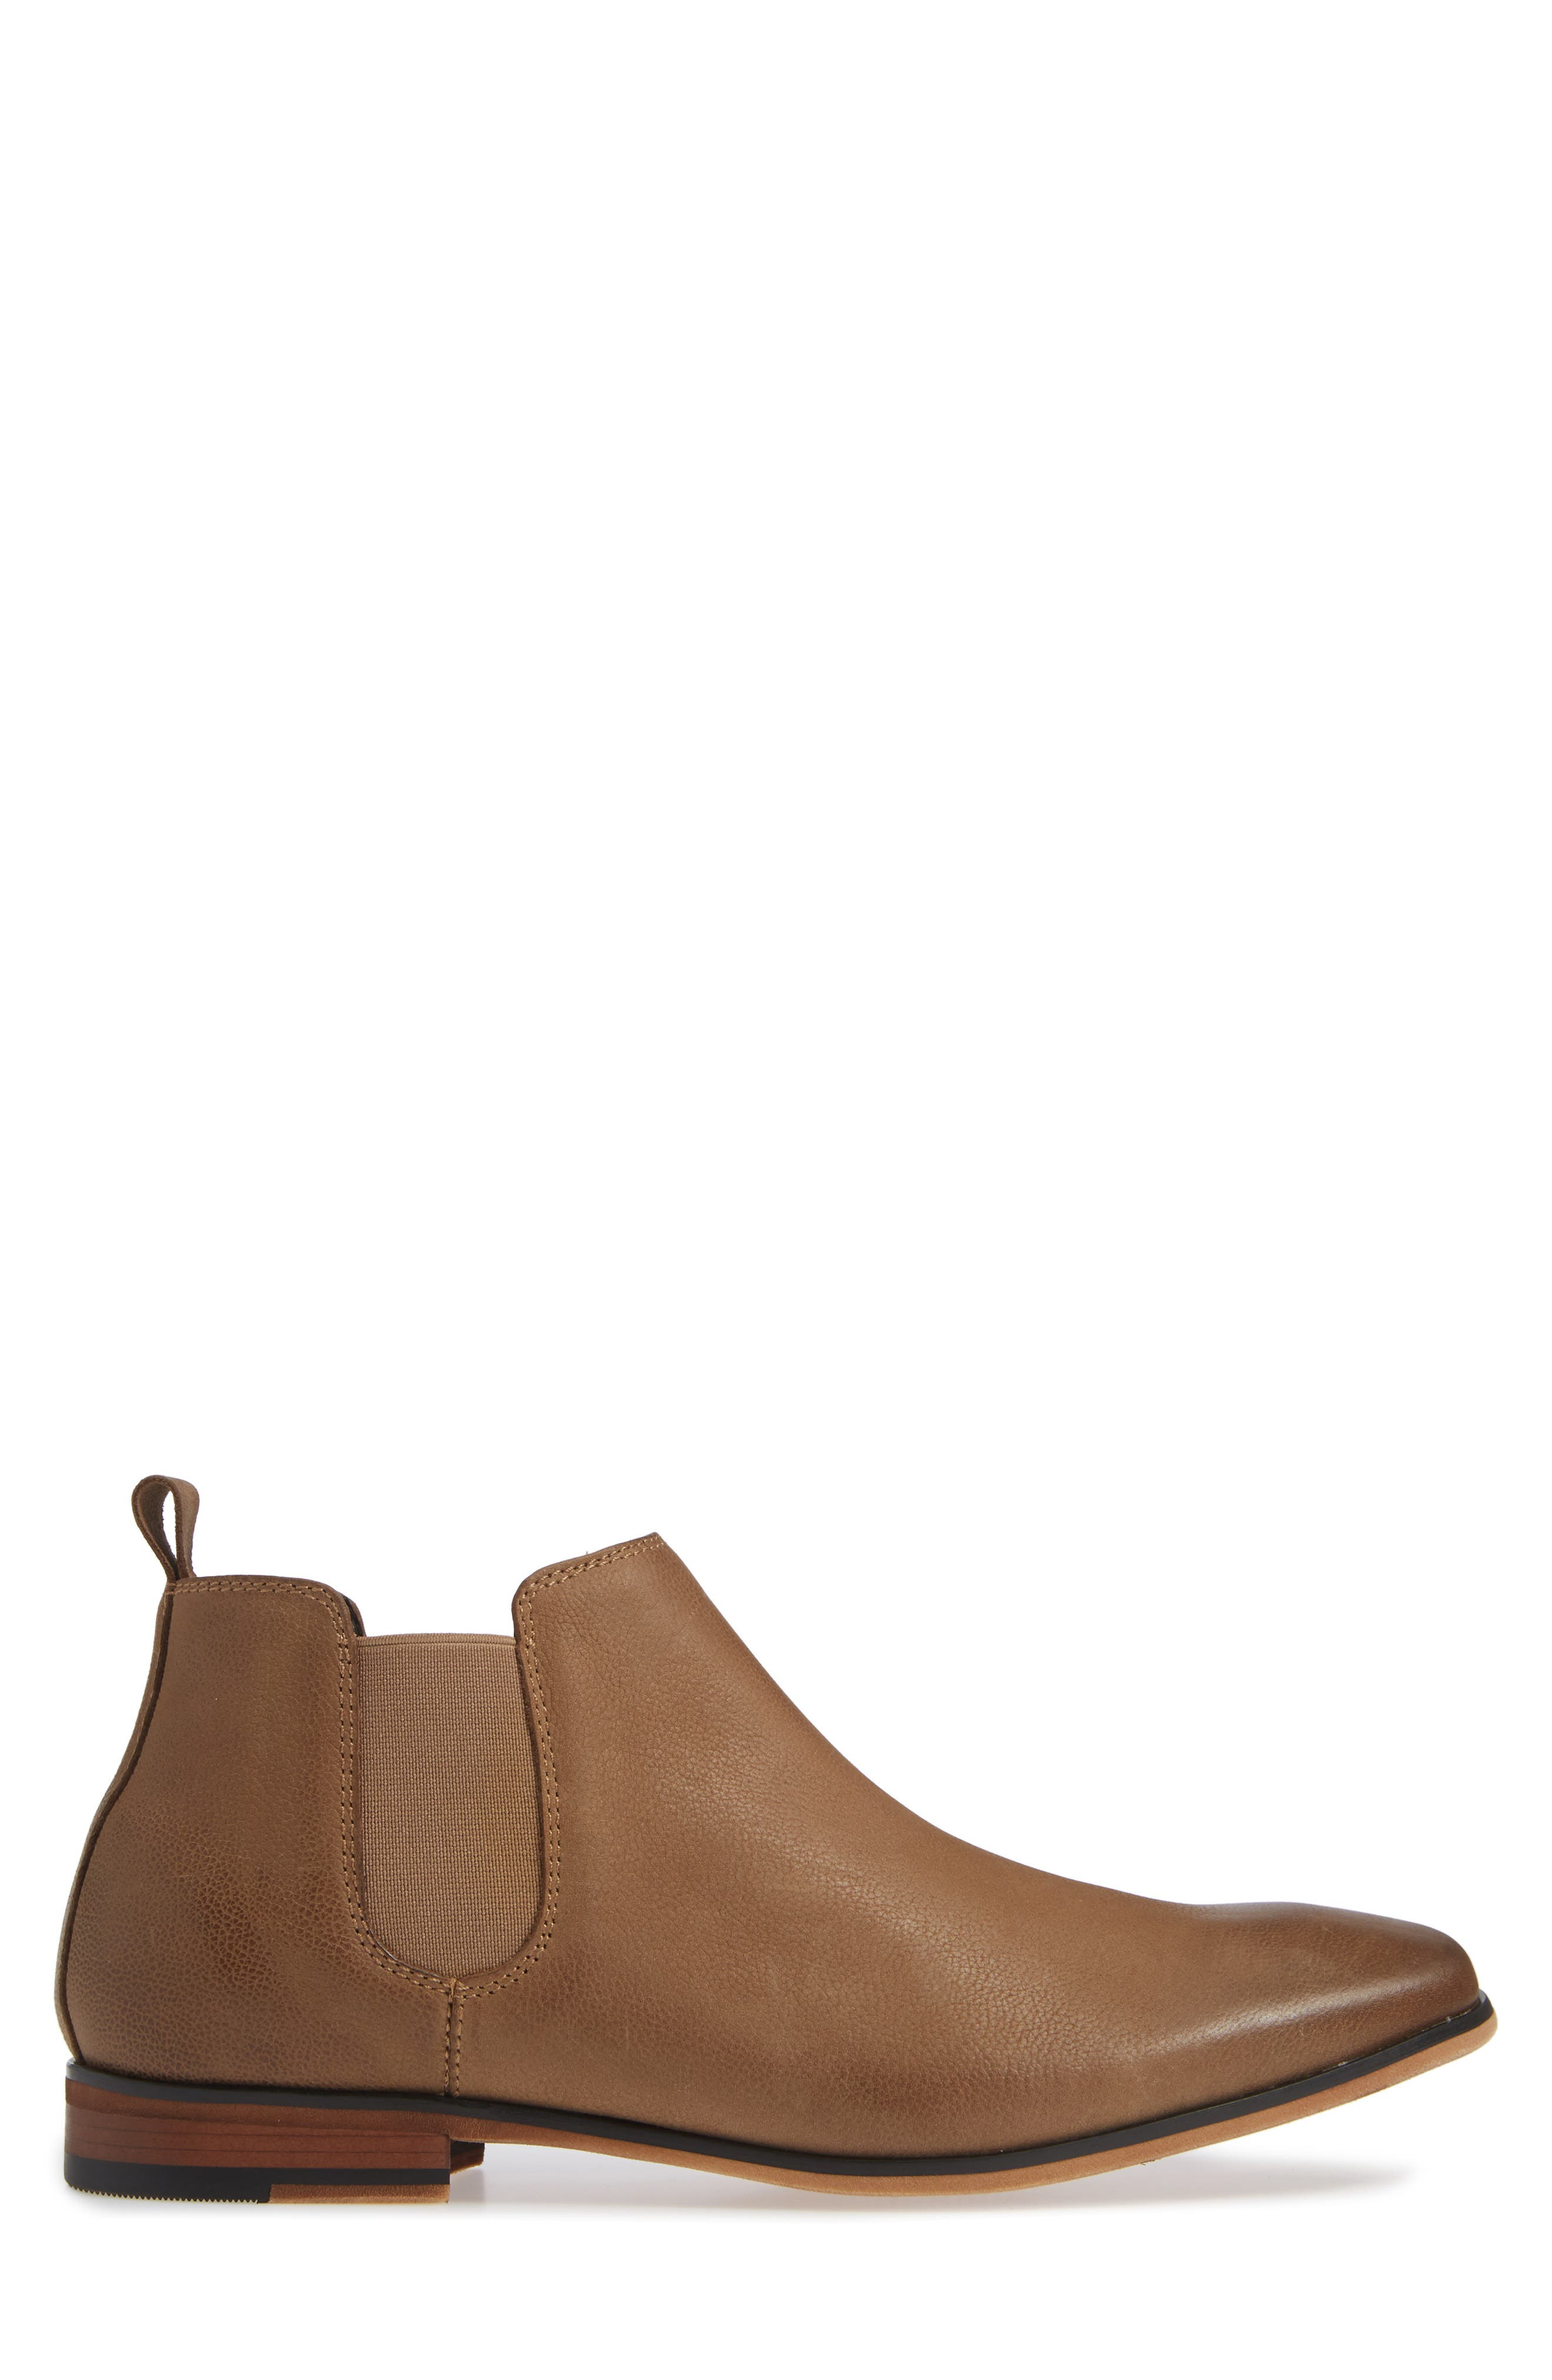 Guy Chelsea Boot,                             Alternate thumbnail 3, color,                             234